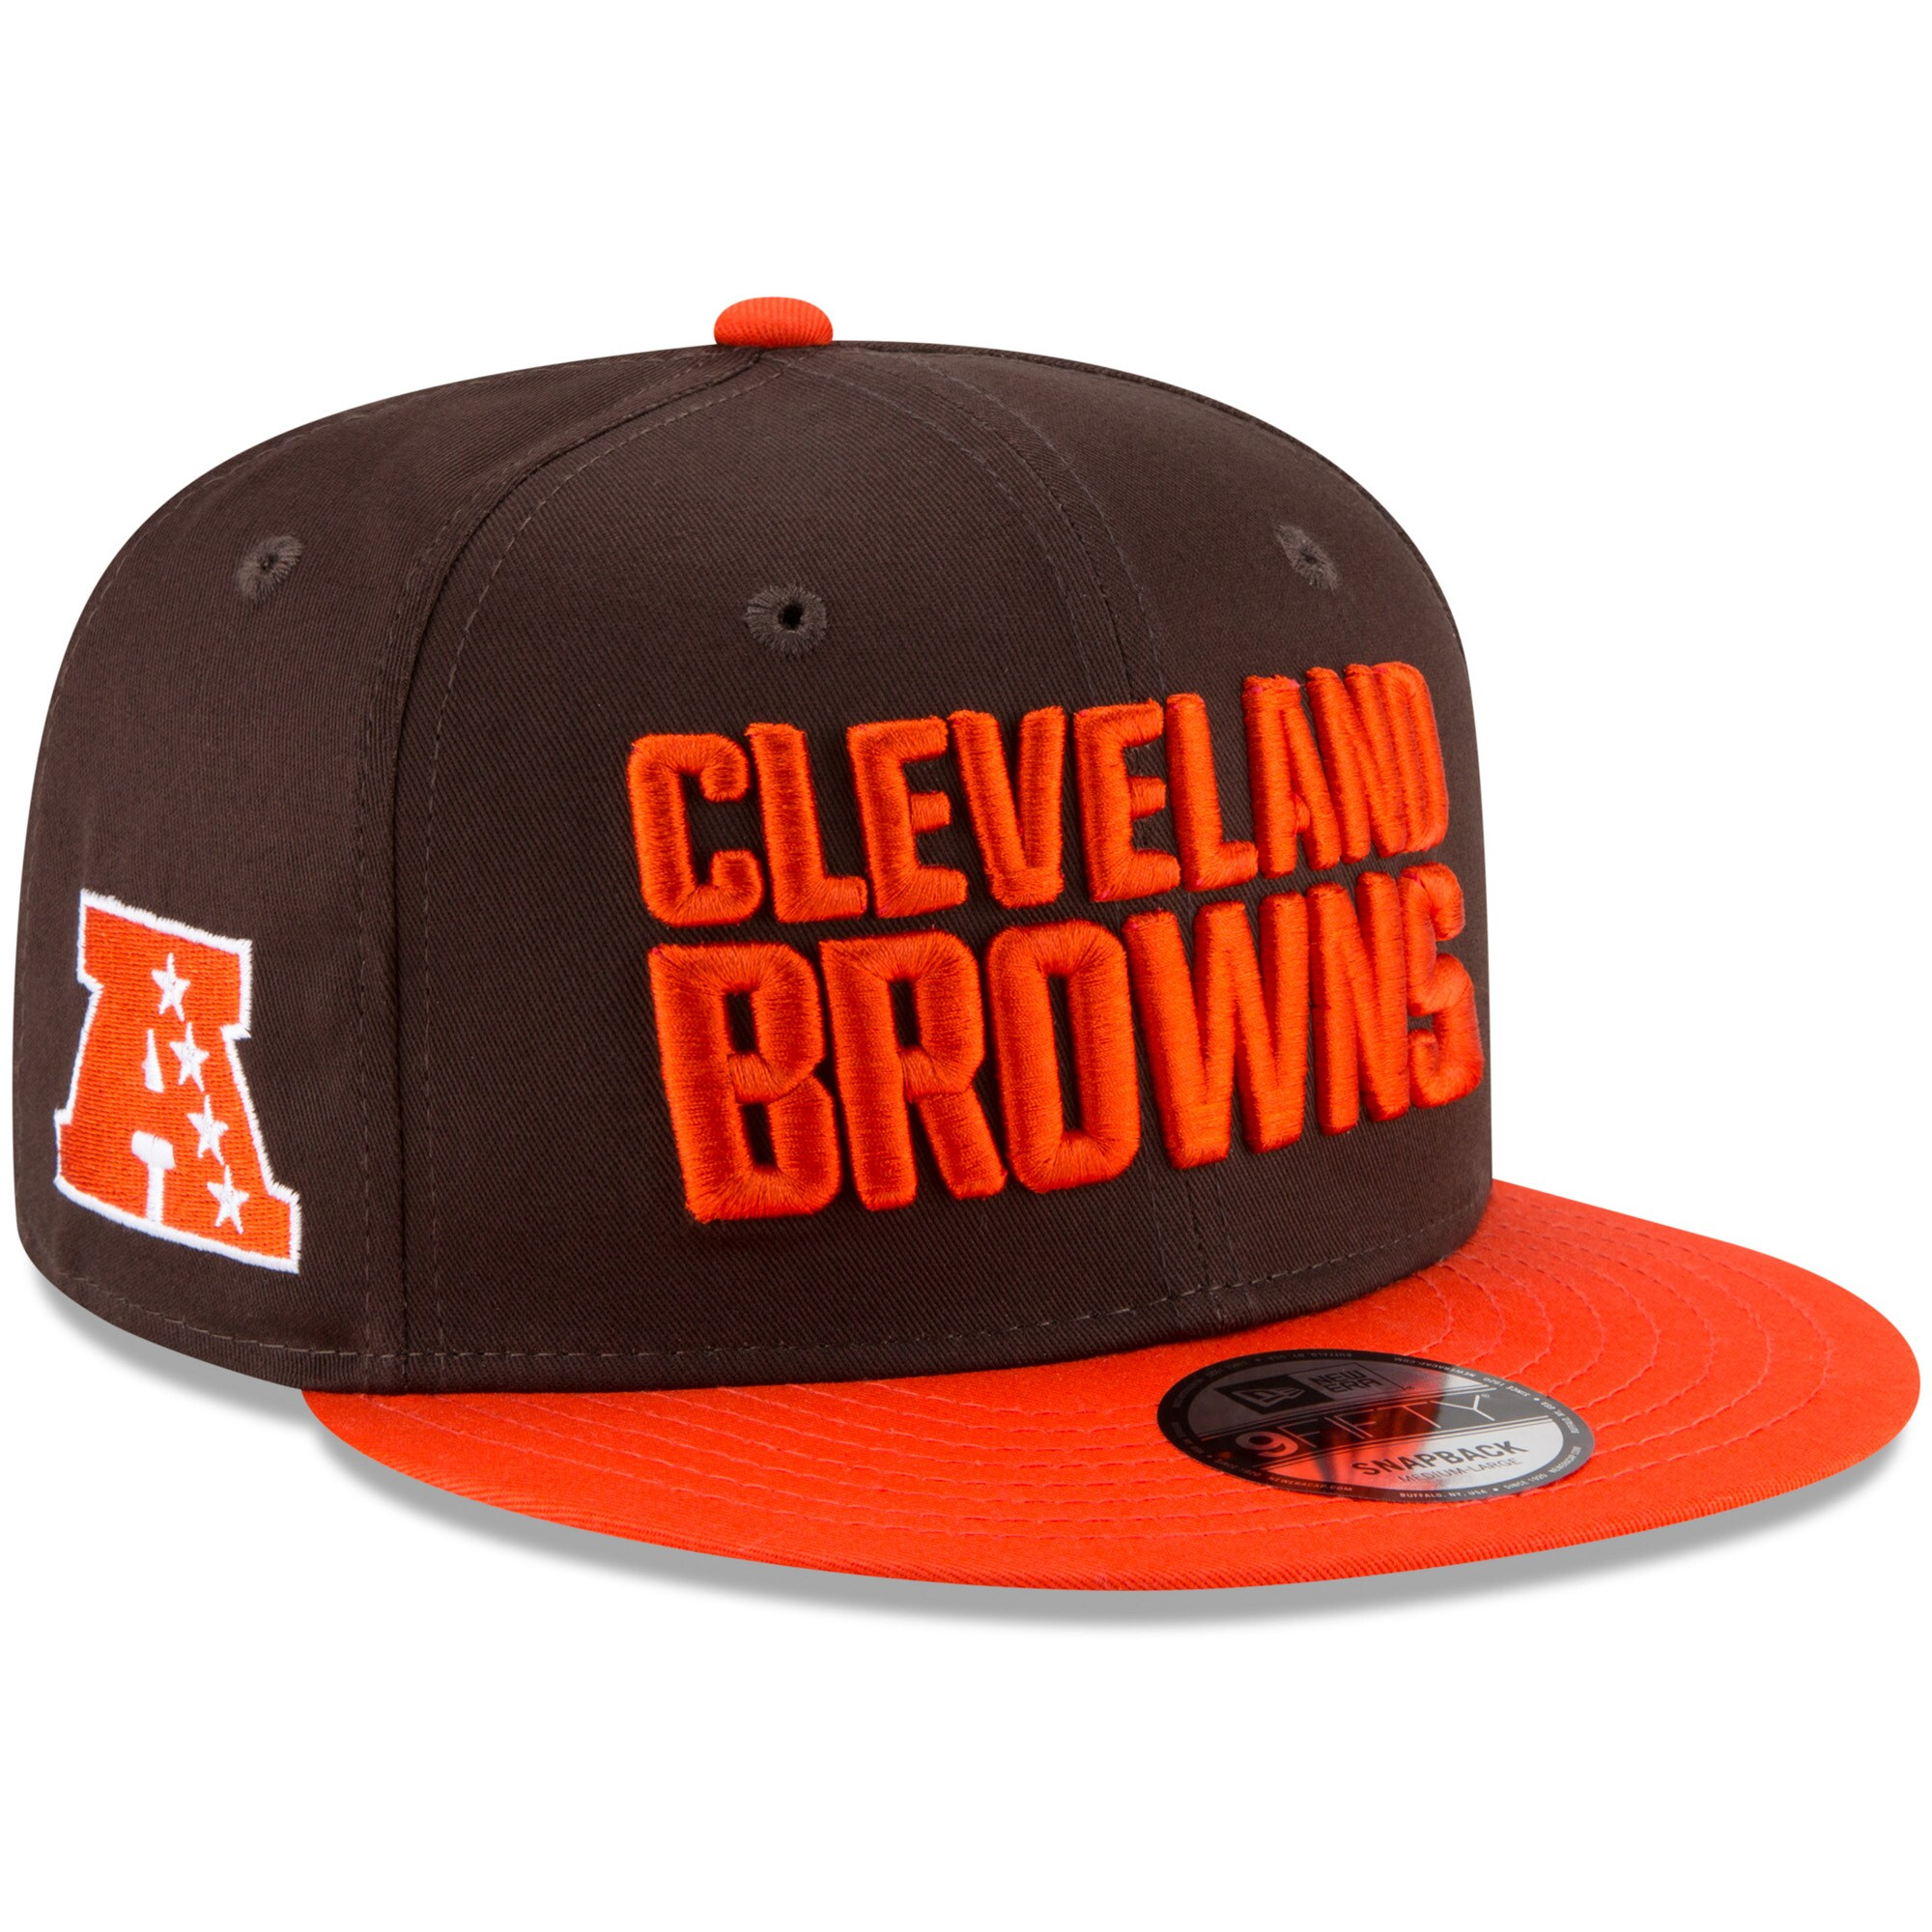 Cleveland Browns New Era Youth Baycik 9FIFTY Snapback Adjustable Hat - Brown/Orange